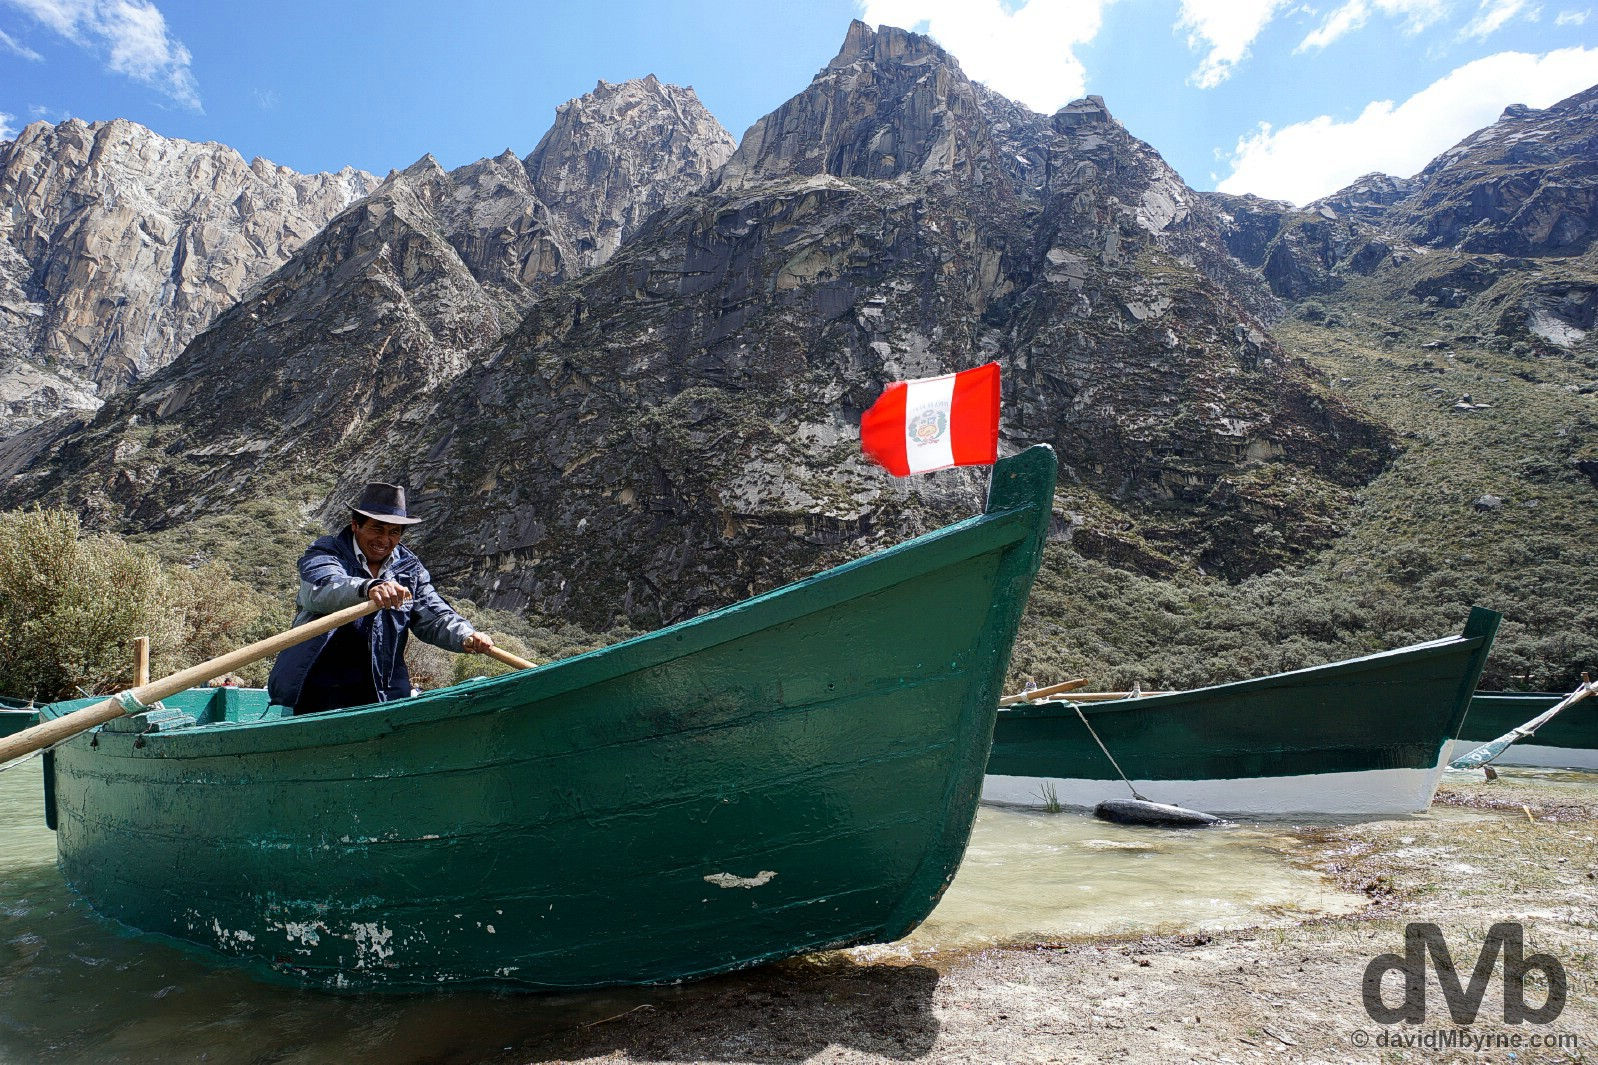 A boatman on Lago (Lake) Chinan Cocha in Parque Nacional Huascaran, Ancash, Peru. August 5, 2015.